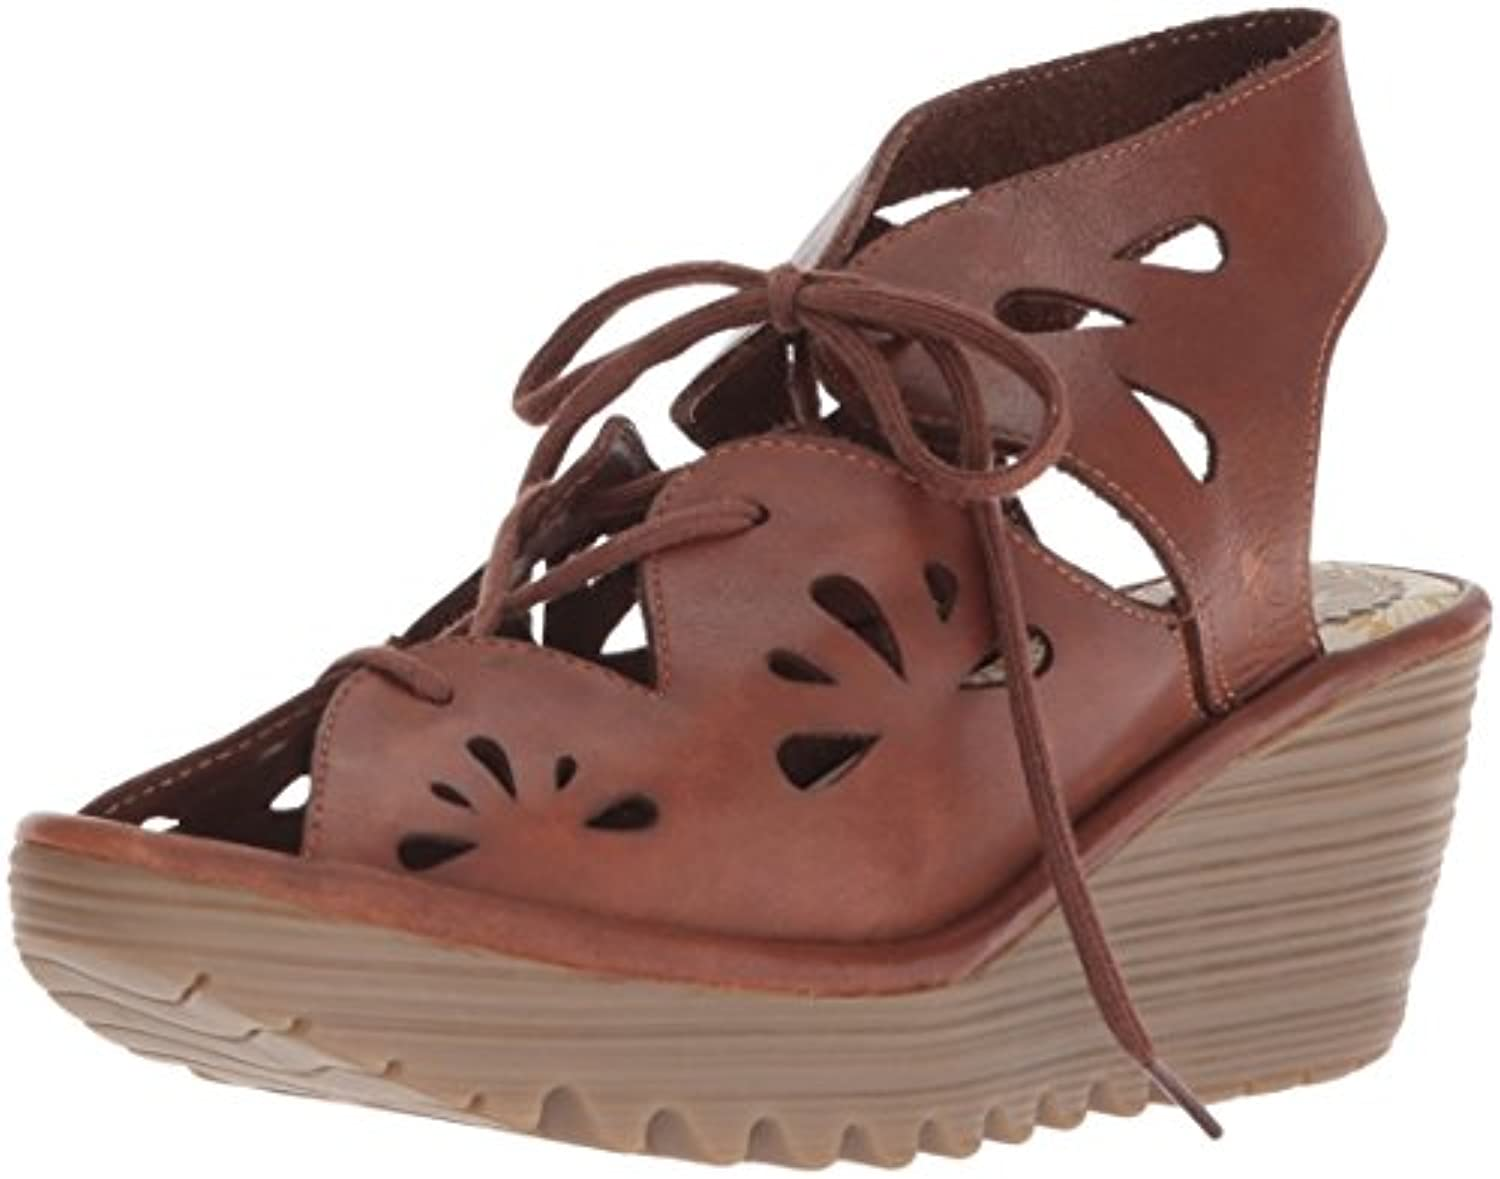 wo  fly fly fly london part au vote le cuir ouverte toe wedge talon fait summer sandales b0752mkxnj parent a1b22b